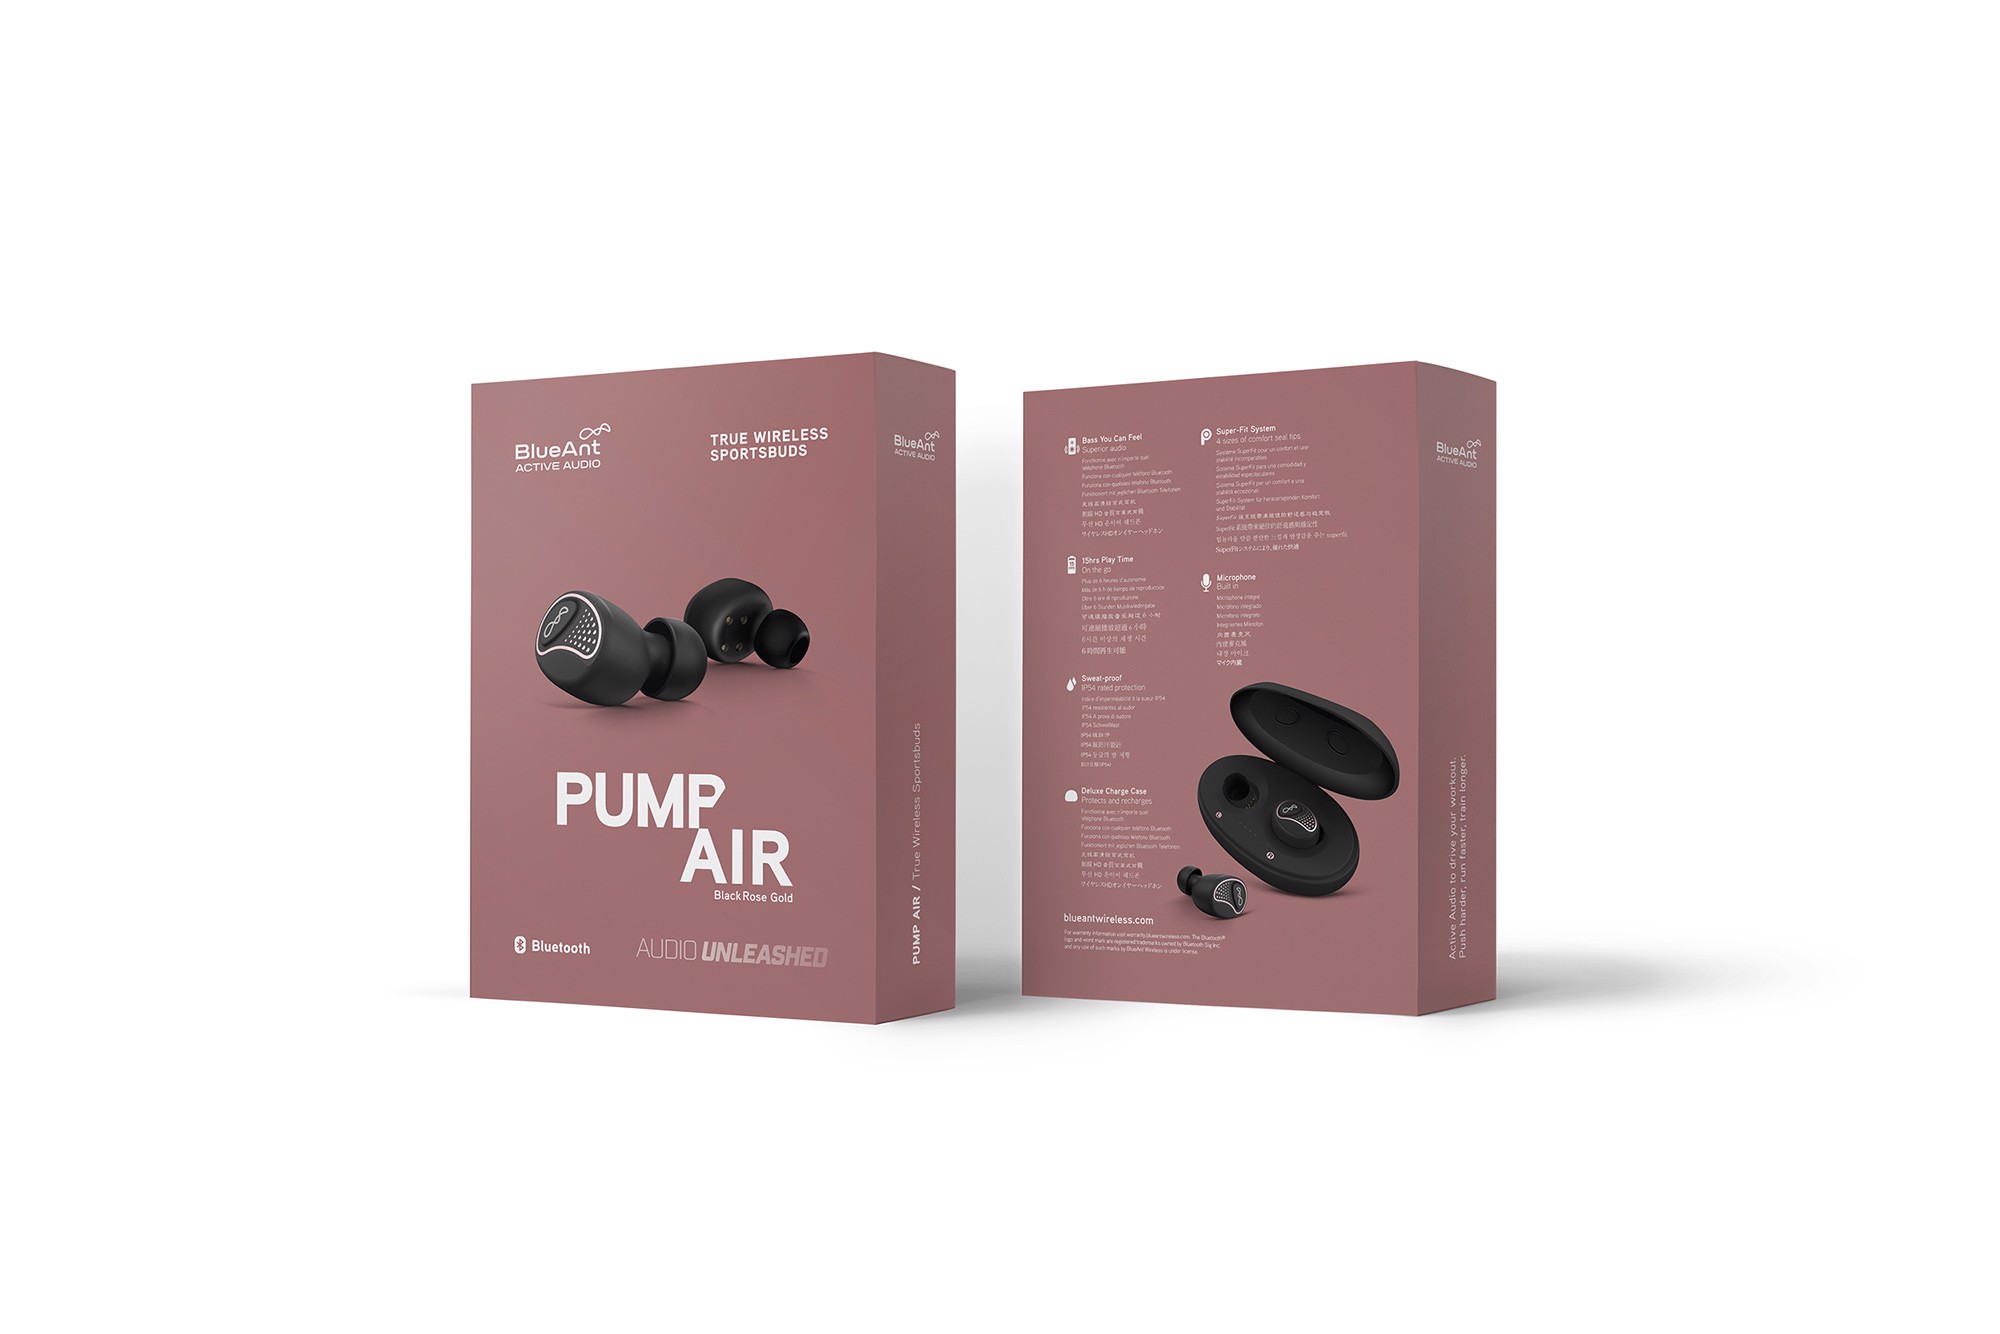 Tai nghe Pump Air Black Rose Gold